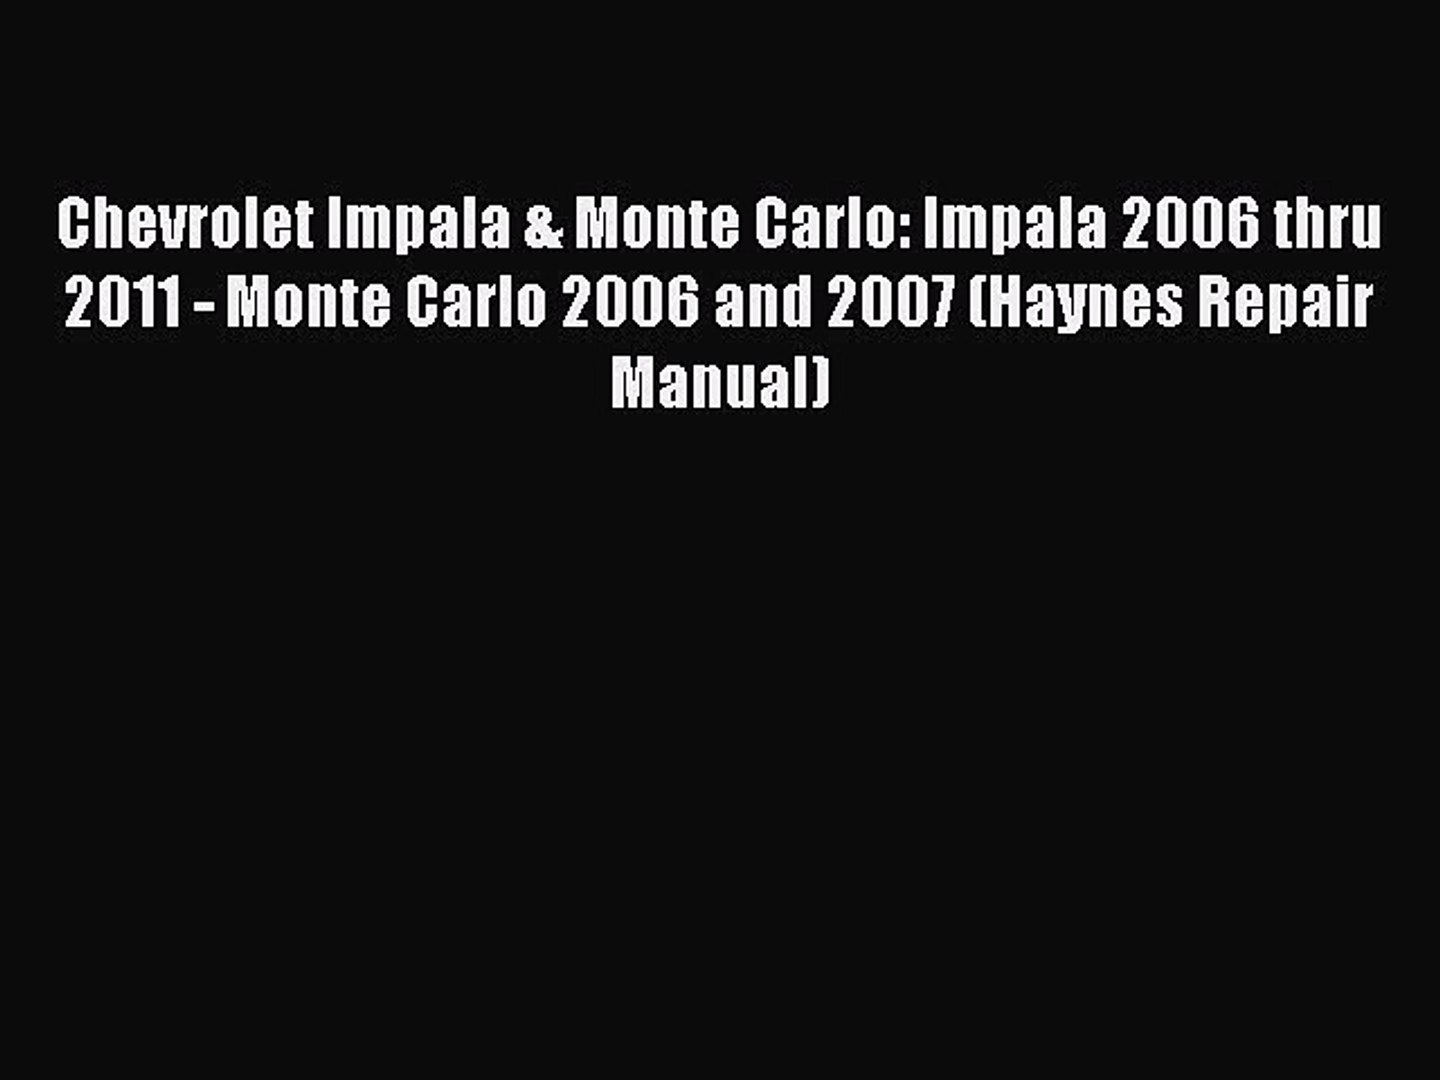 [Read Book] Chevrolet Impala & Monte Carlo: Impala 2006 thru 2011 - Monte Carlo 2006 and 2007